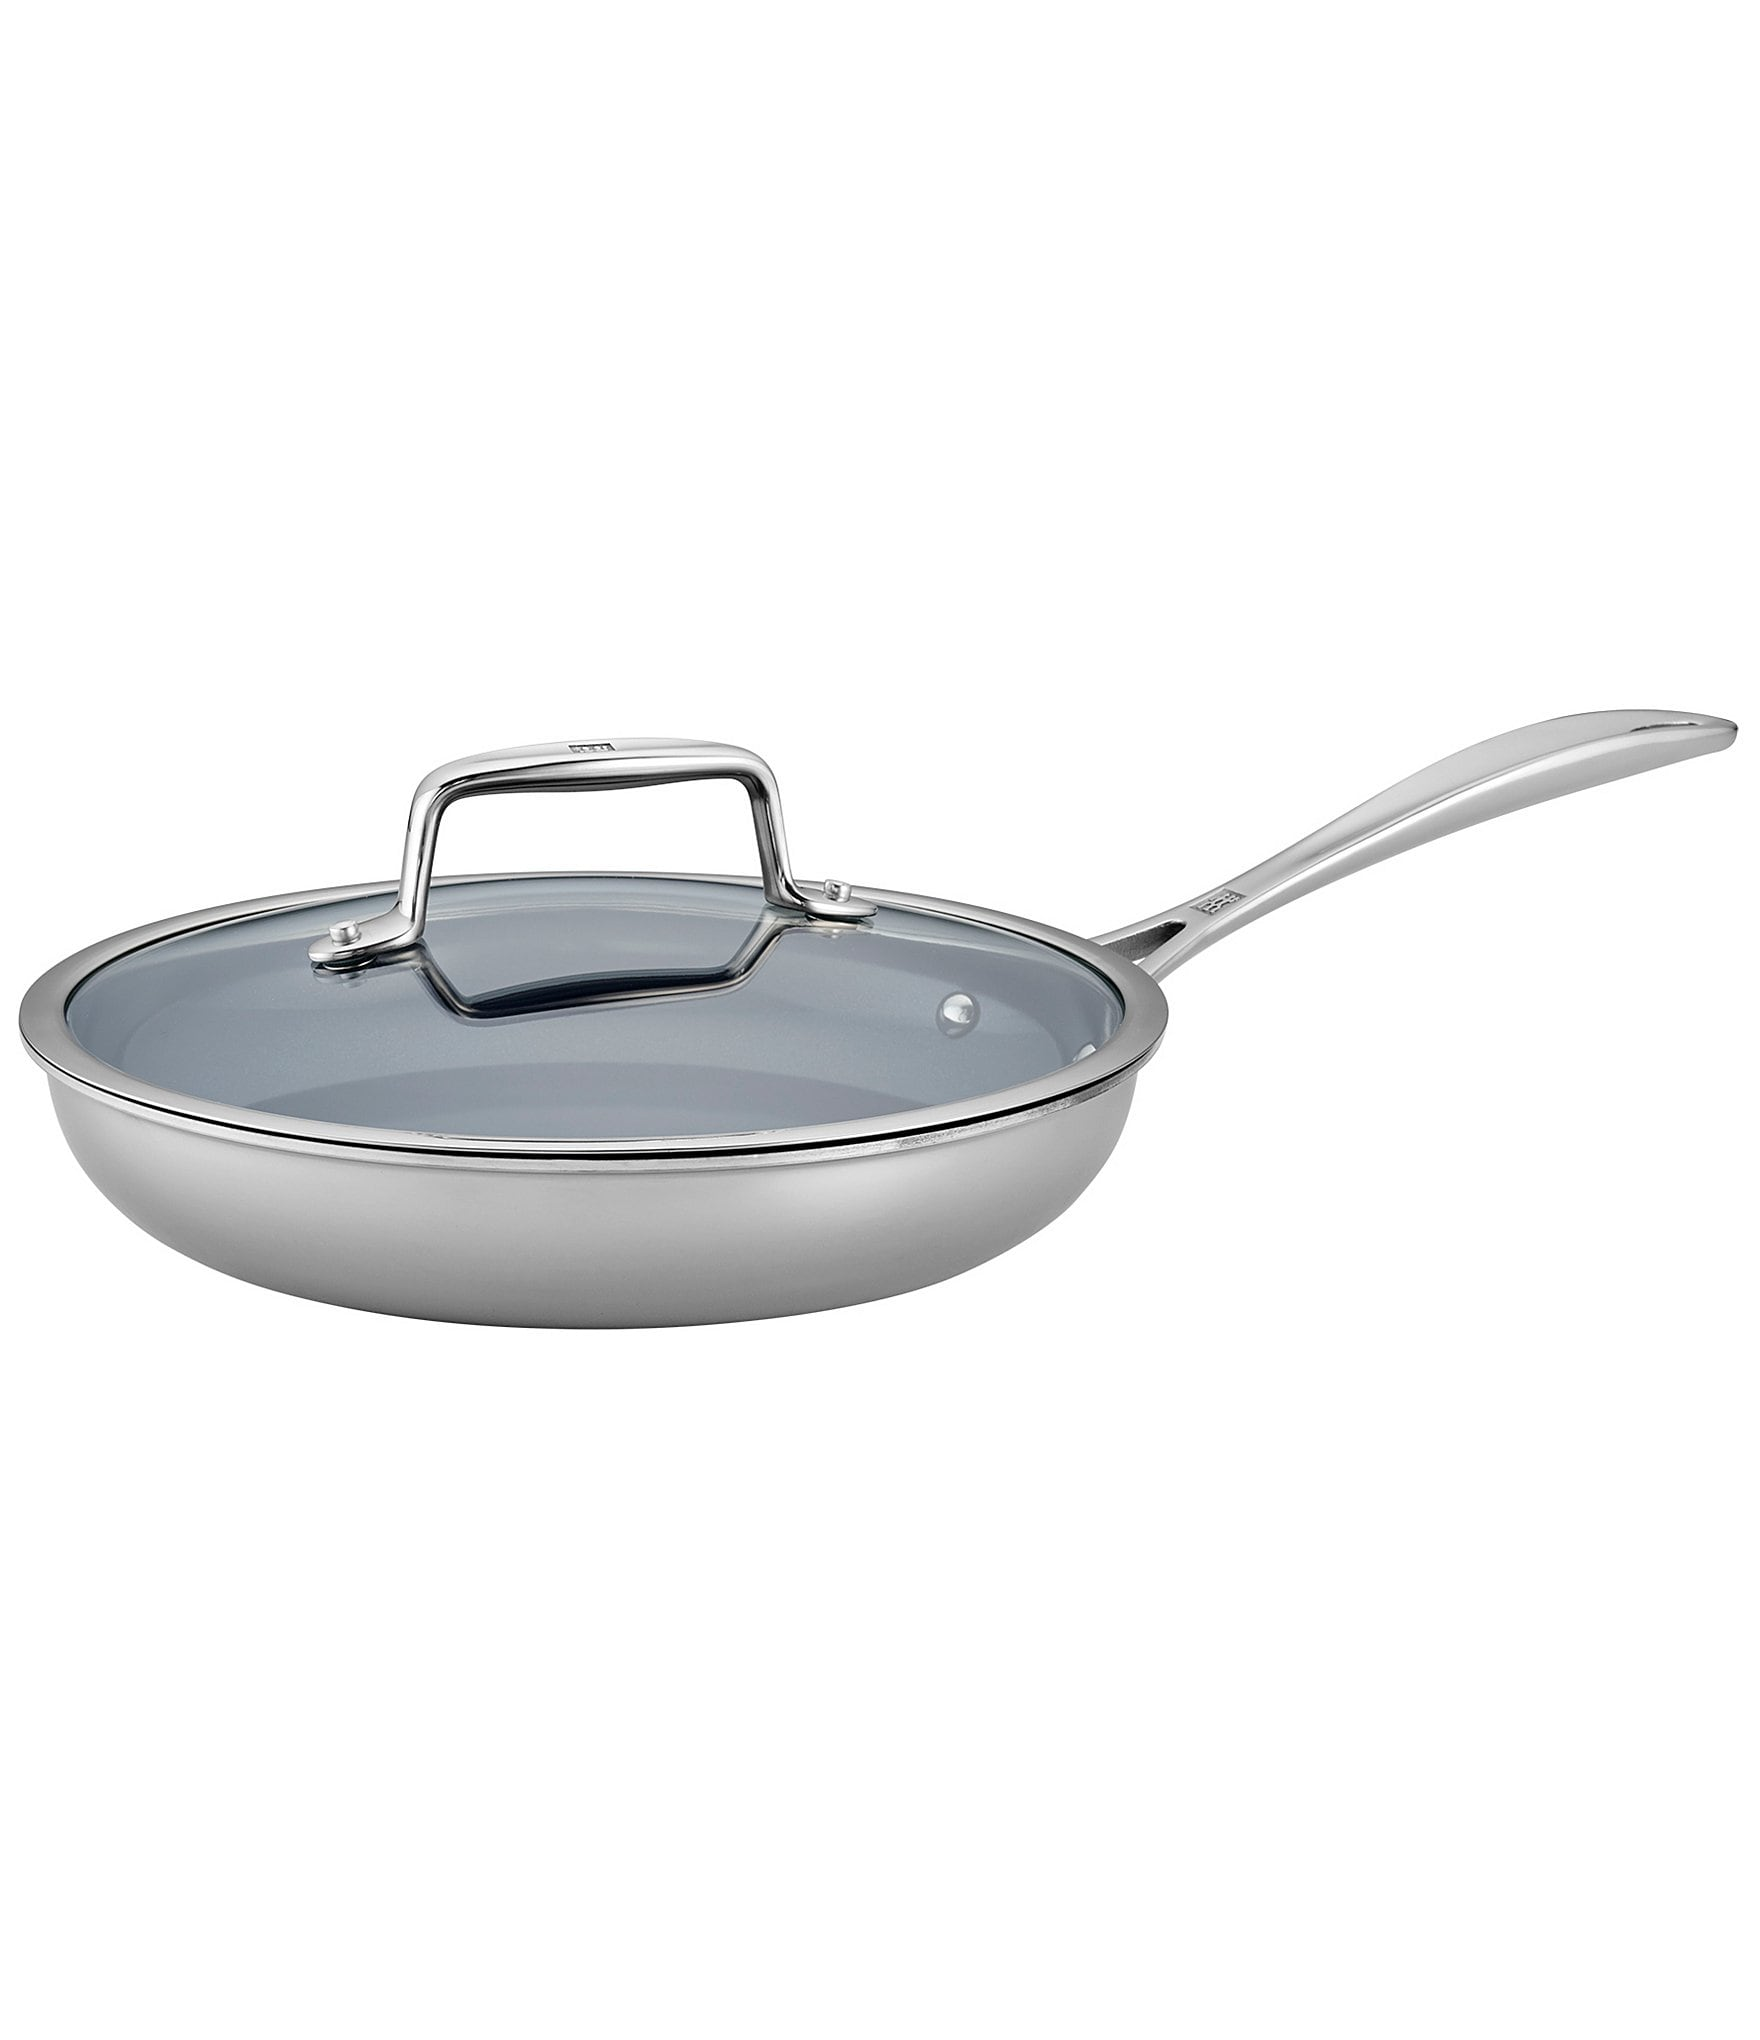 Zwilling Clad Cfx 2 Pc Stainless Steel Ceramic Nonstick